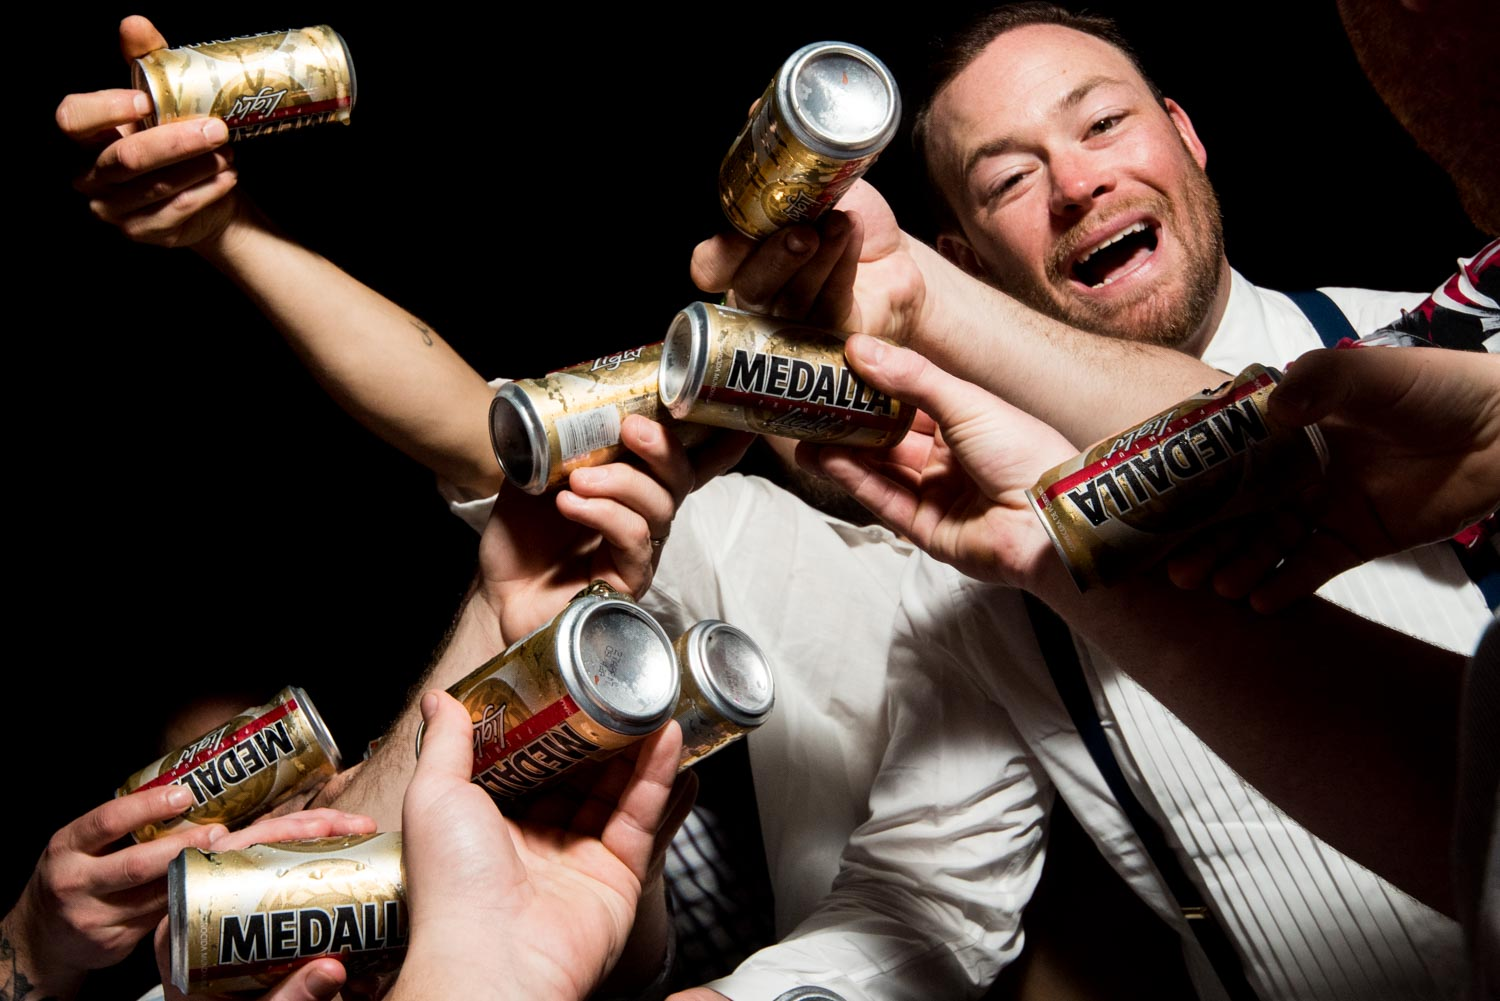 Groom wearing white shirt surrounded by Medalla beer cans that his friends are about to chug.